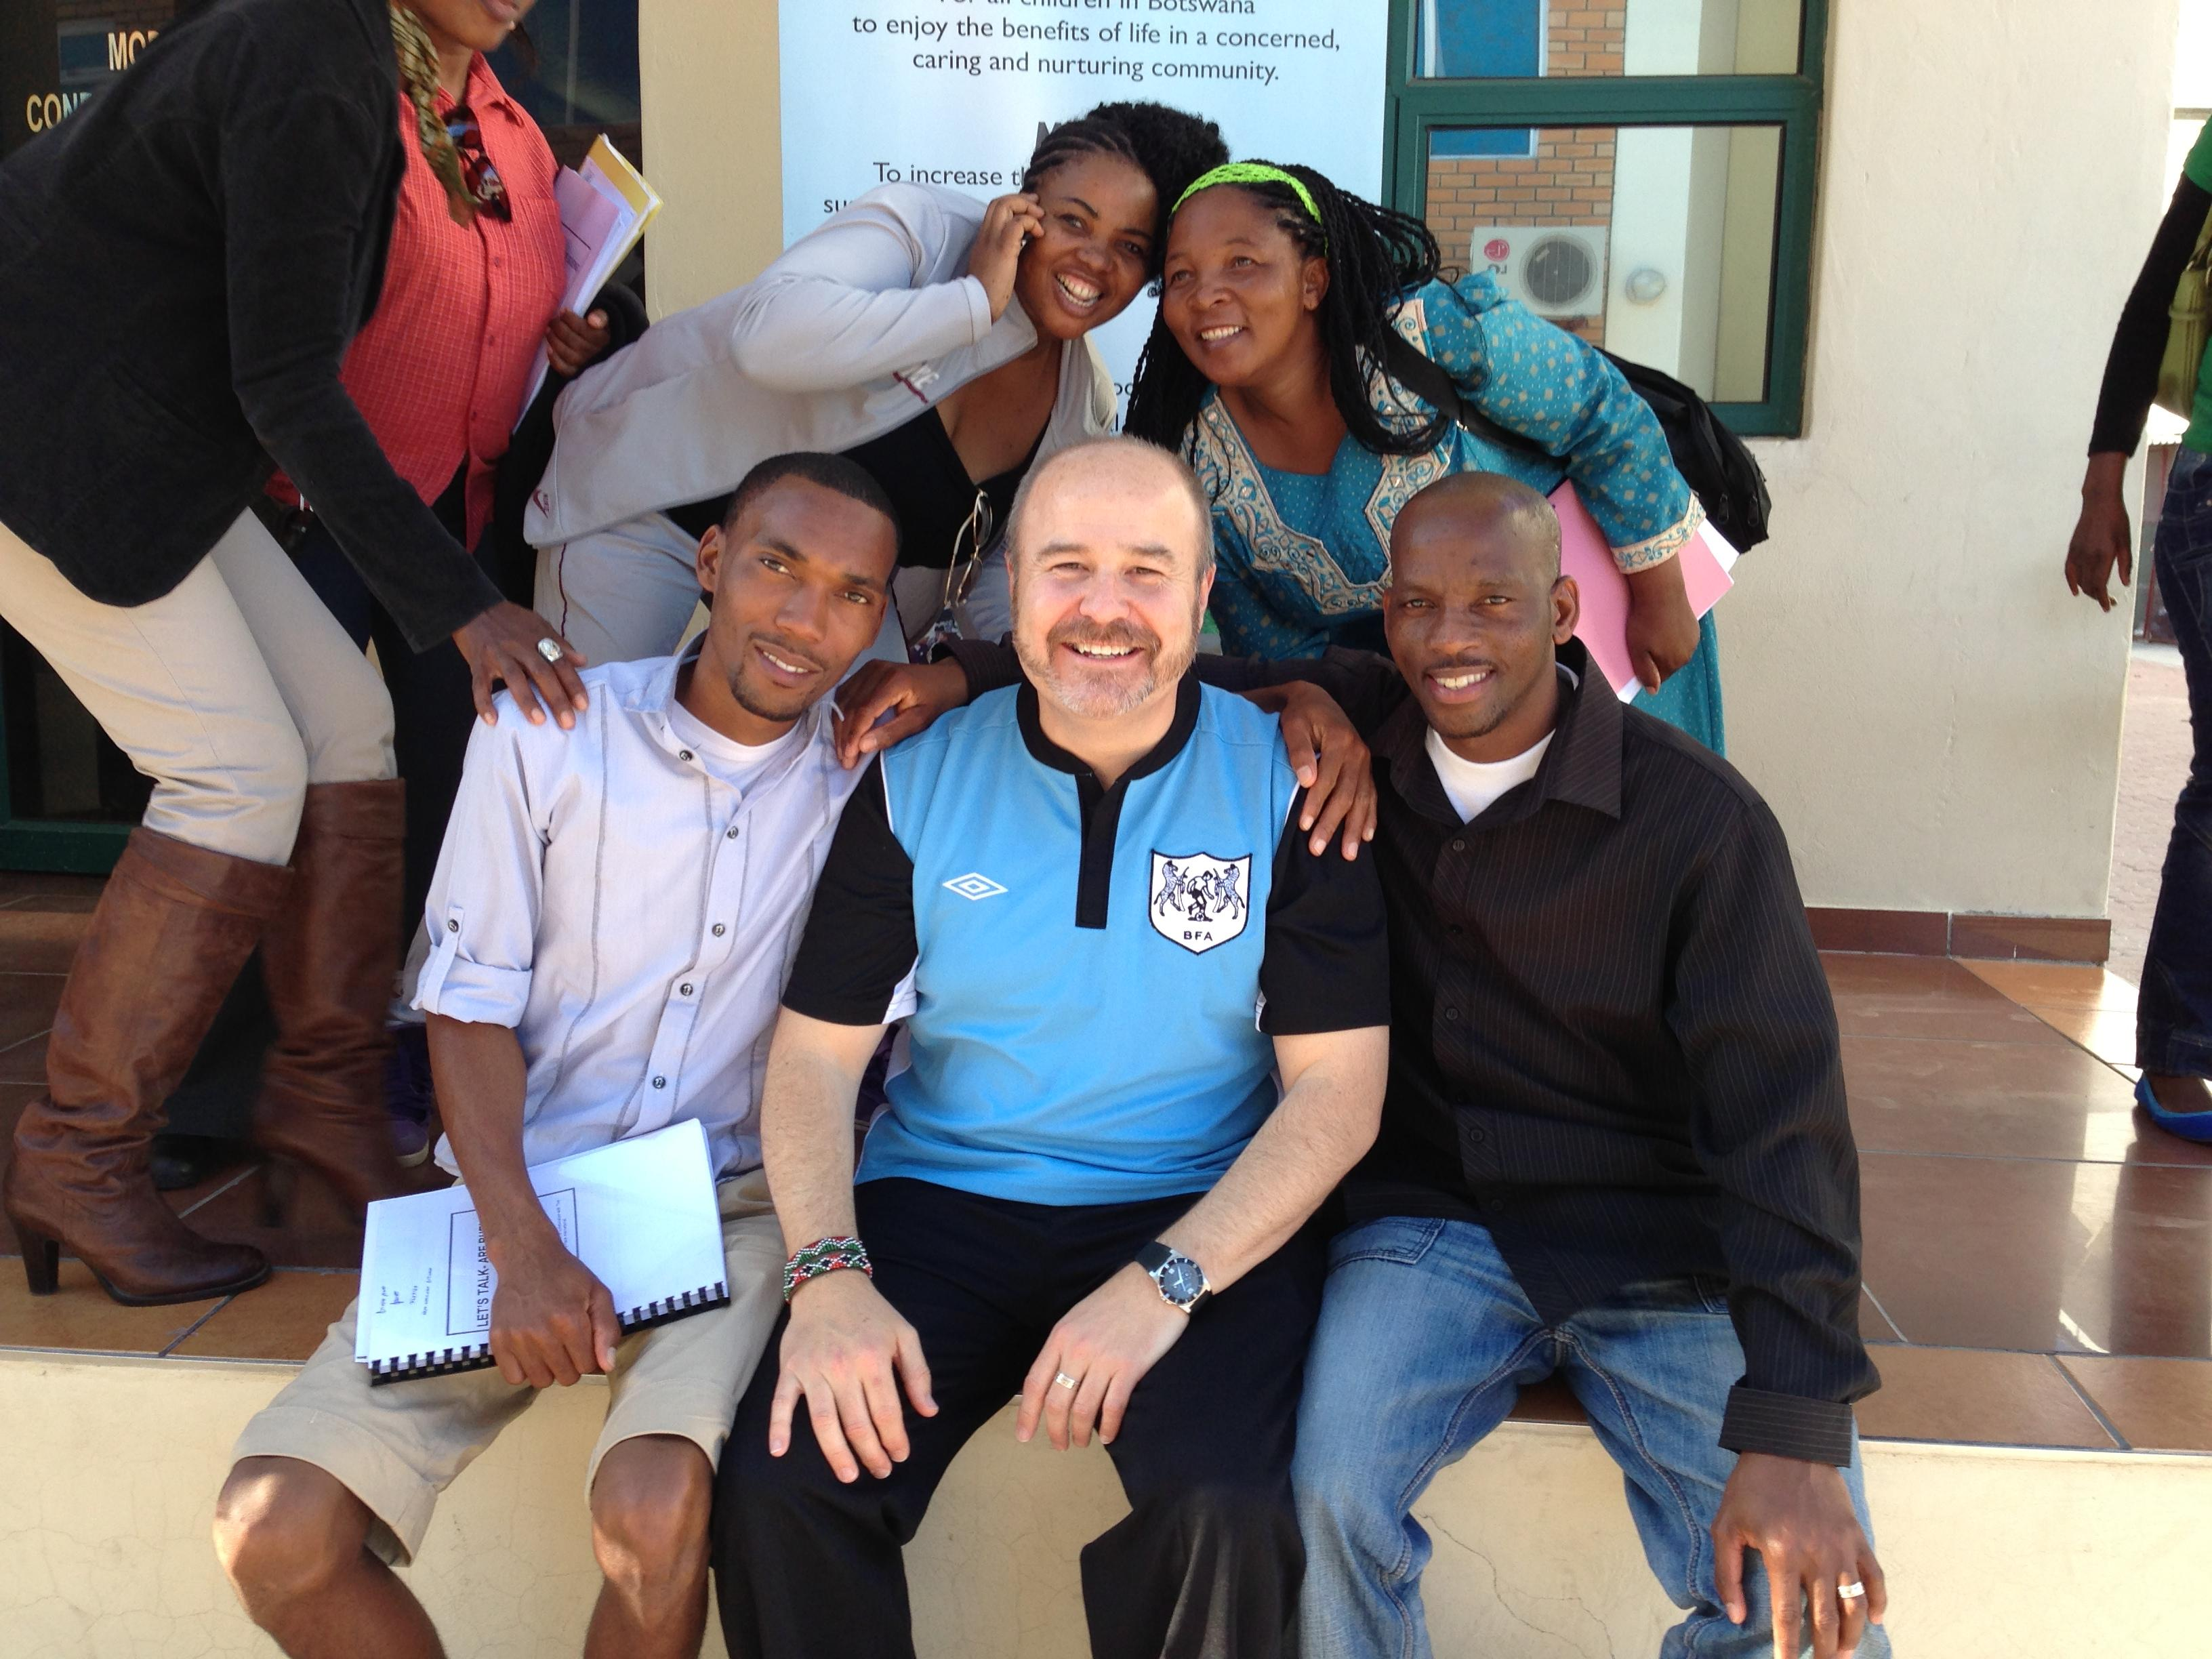 Gary Harper in Maun, Botswana with participants in a national-level training workshop focused on building the capacity of child service providers to provide developmentally appropriate services to adolescents impacted by HIV.